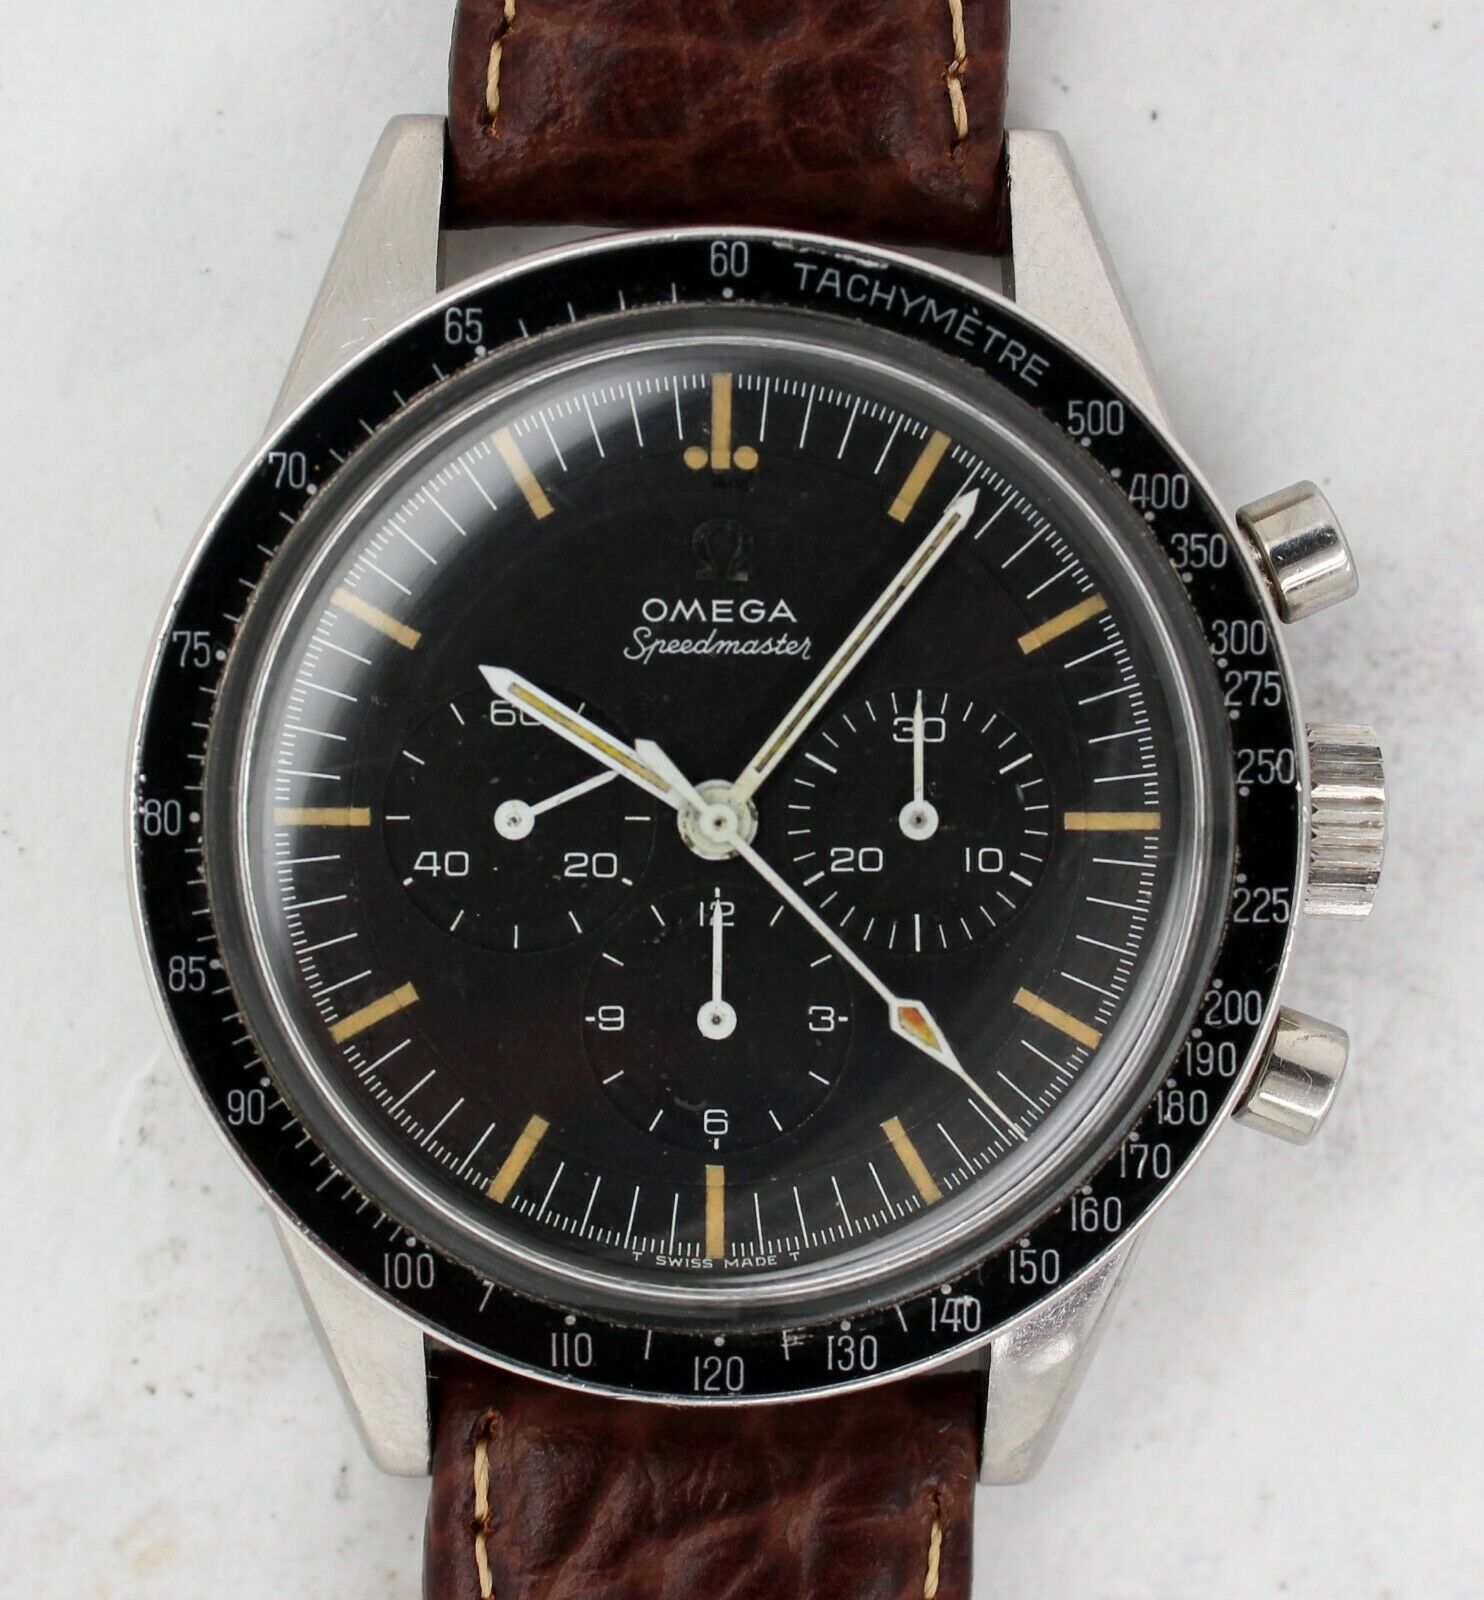 Vintage Omega Speedmaster Chronograph Wristwatch 105.003-65 Cal. 321 Ed White - watch picture 1